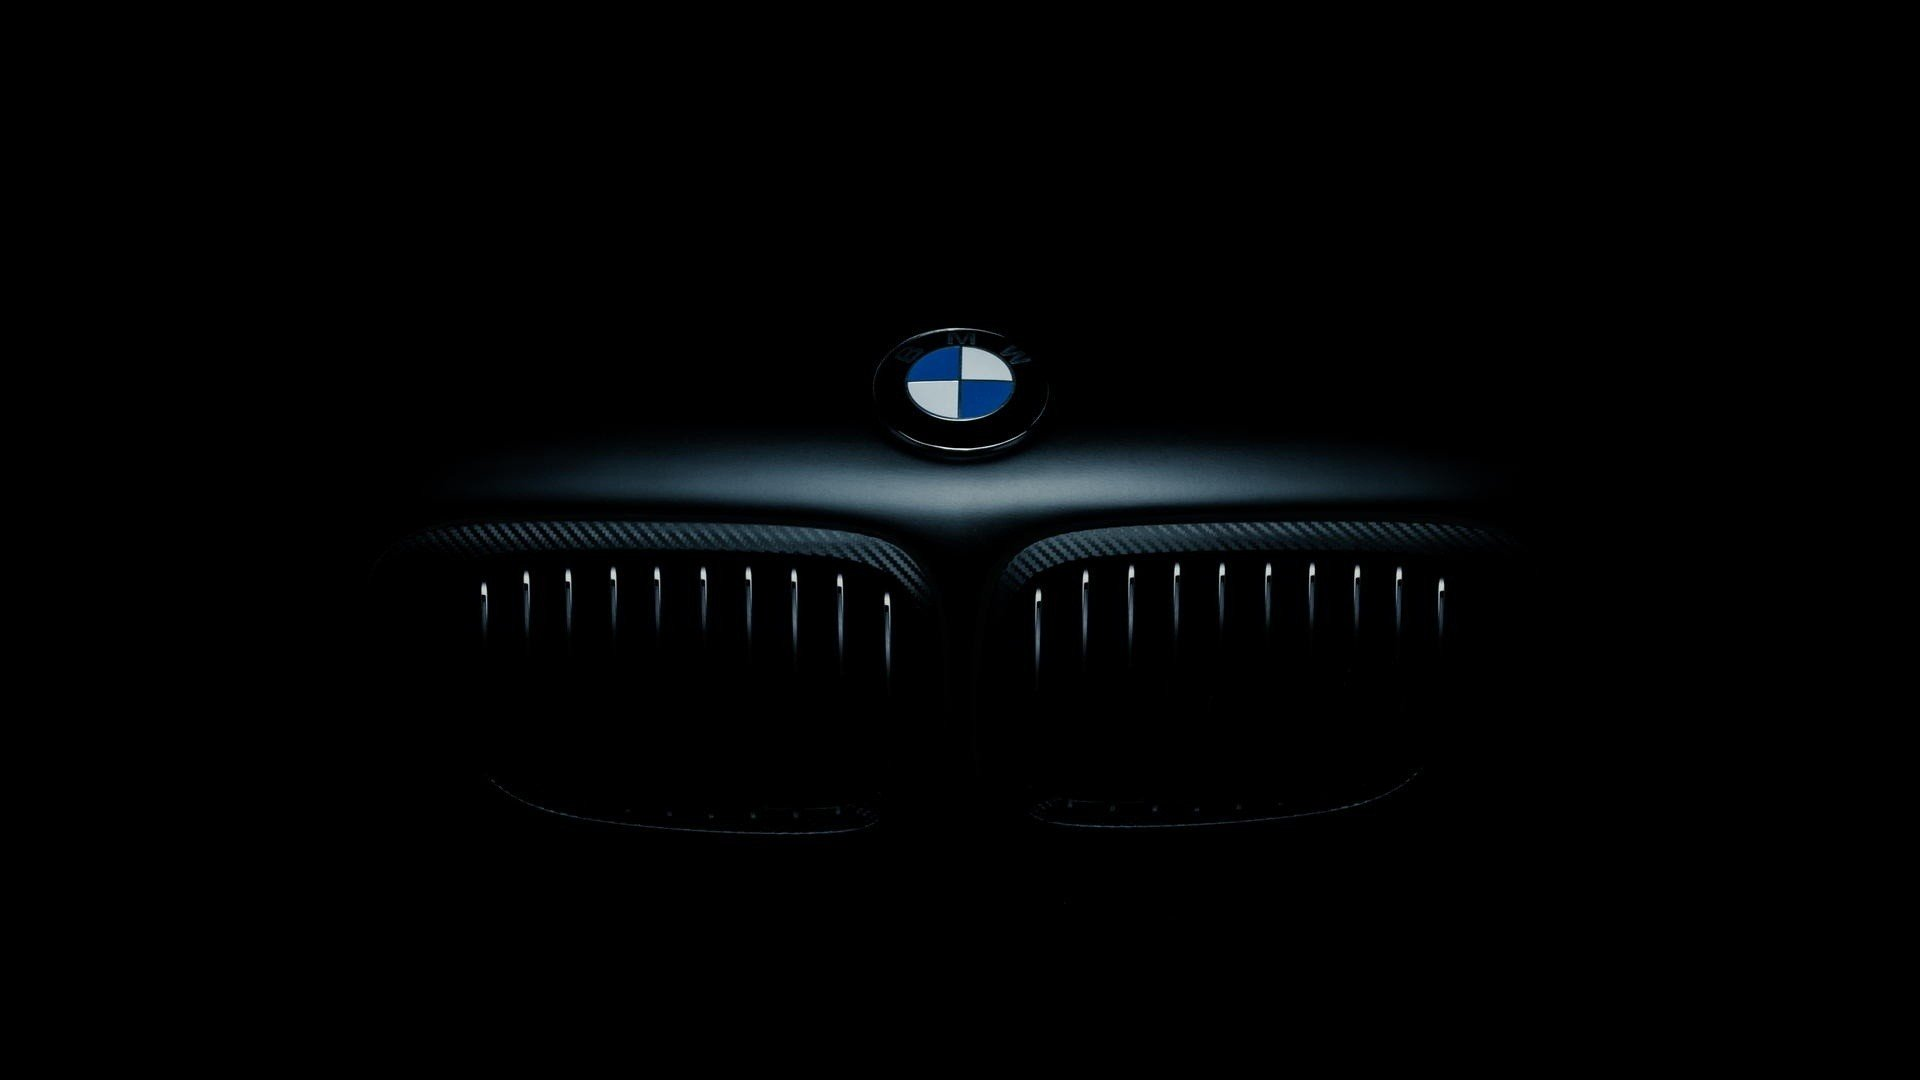 M Sport Wallpaper Iphone: BMW HD Wallpapers For Desktop Download